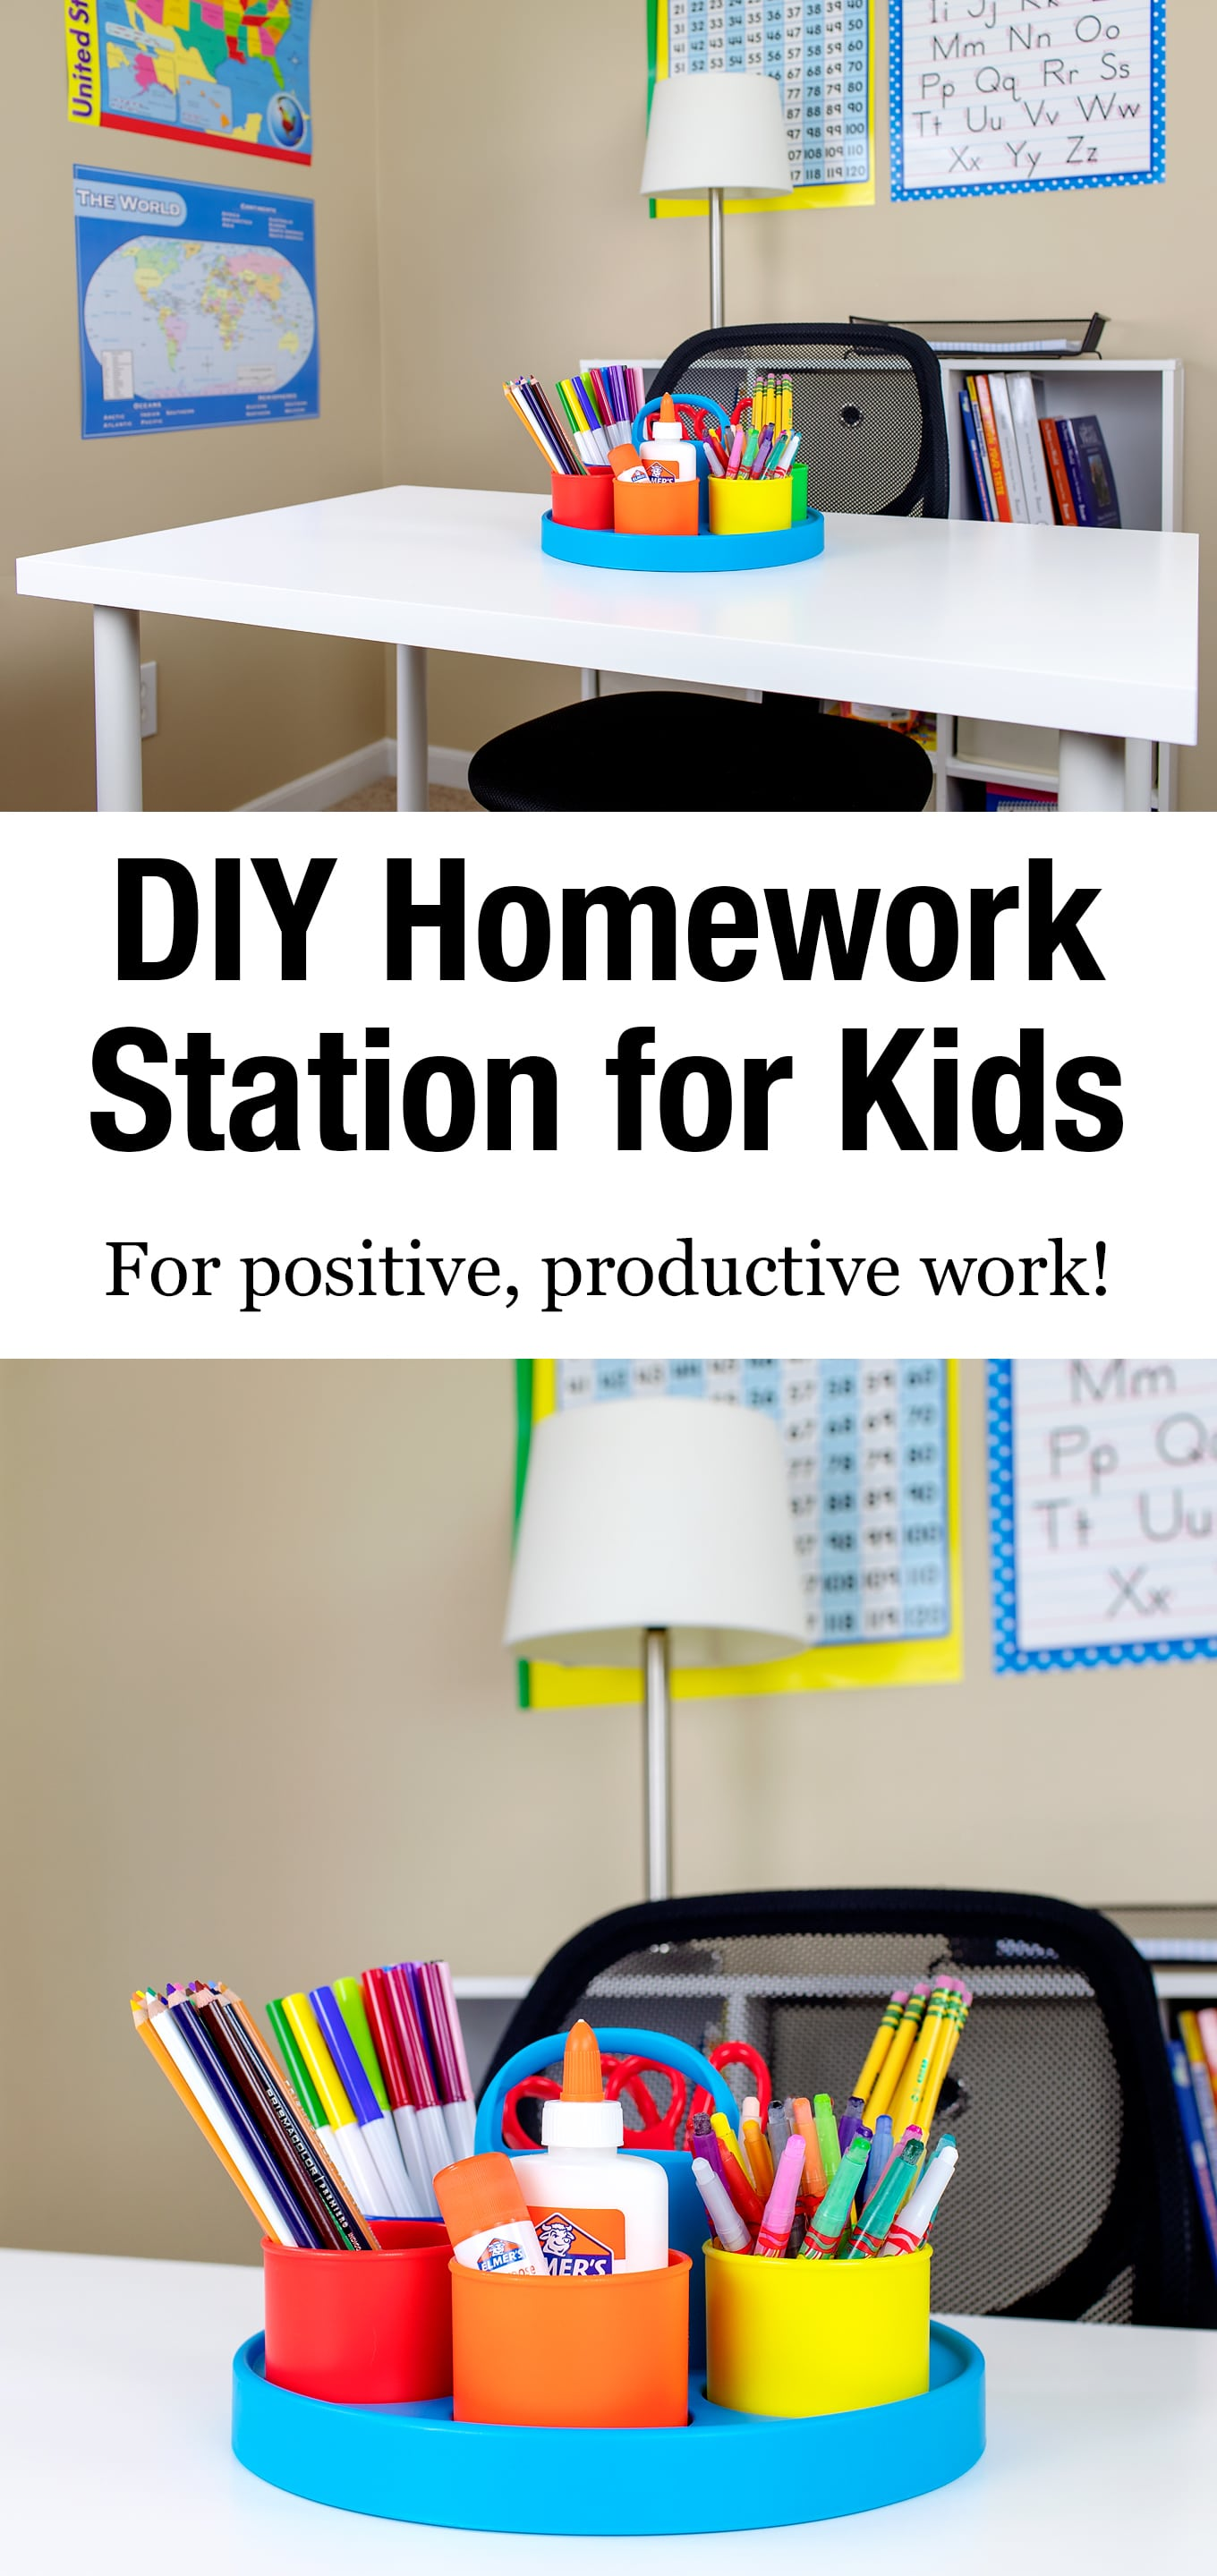 Help develop positive study skills, productive work habits, and increased school success by creating a designated kids homework station in your home. #homeworkstation #backtoschool #kids via @firefliesandmudpies